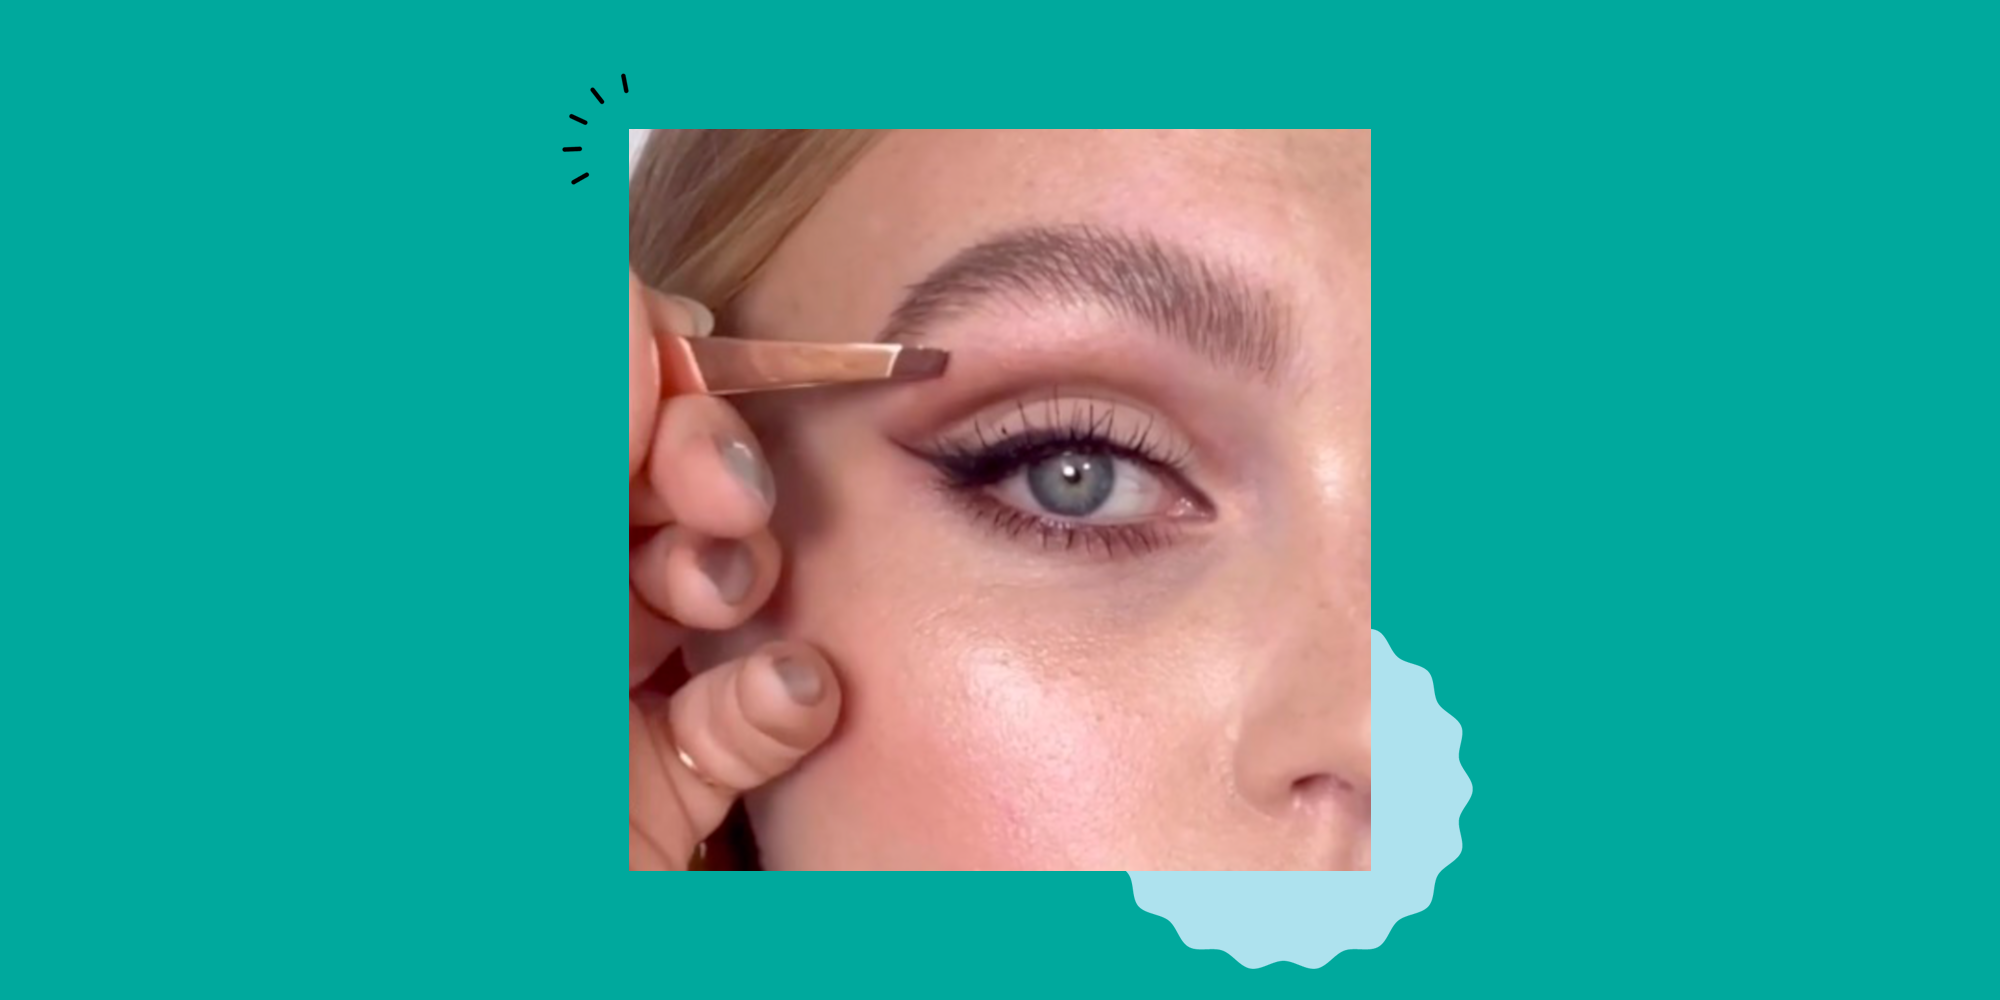 According to Nikki Makeup, we're plucking our eyebrows *all* wrong